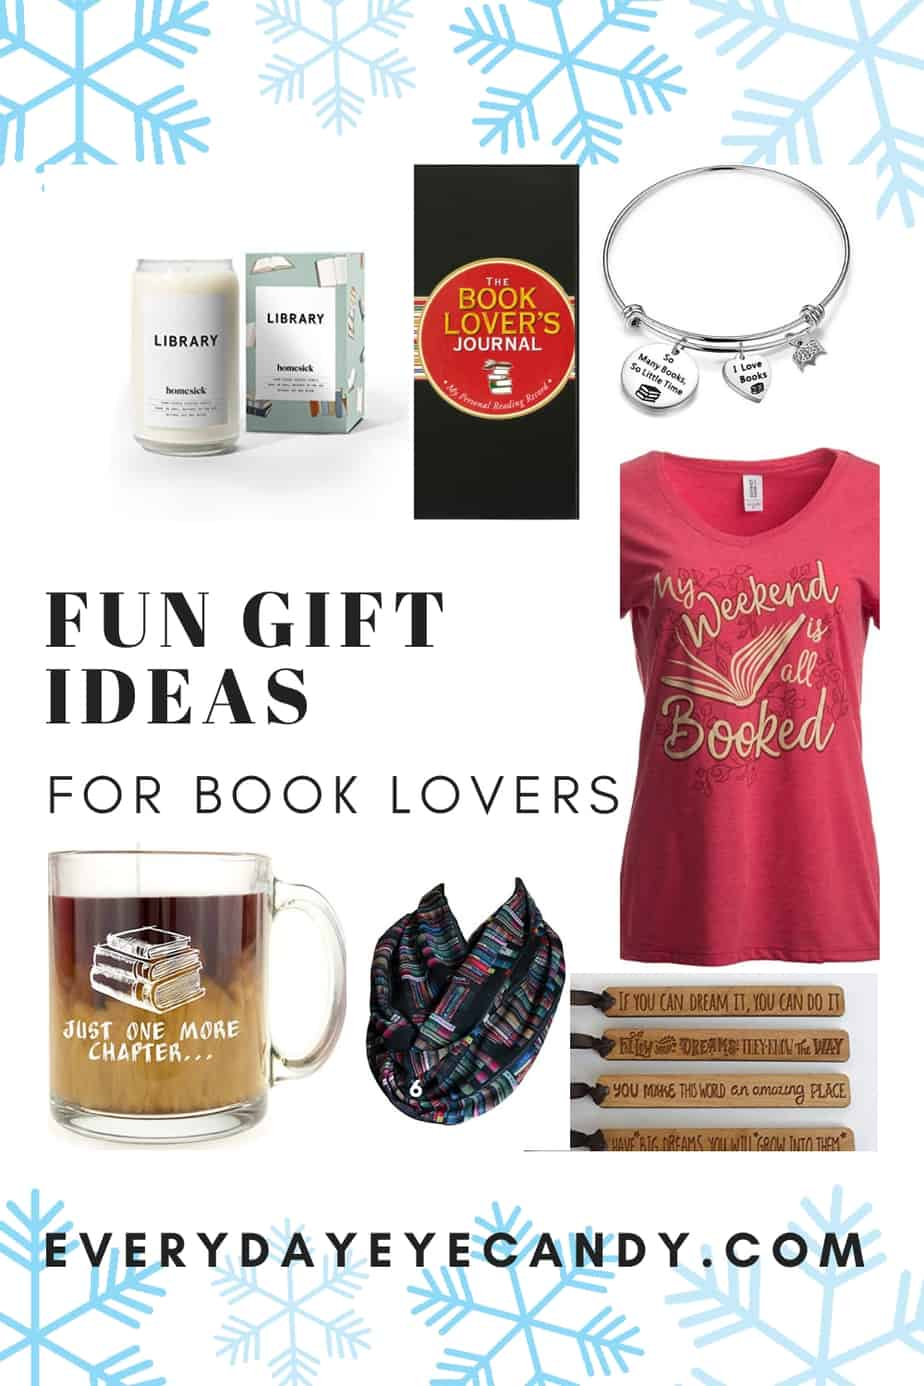 15 Awesome Gifts for Book Lovers 2019